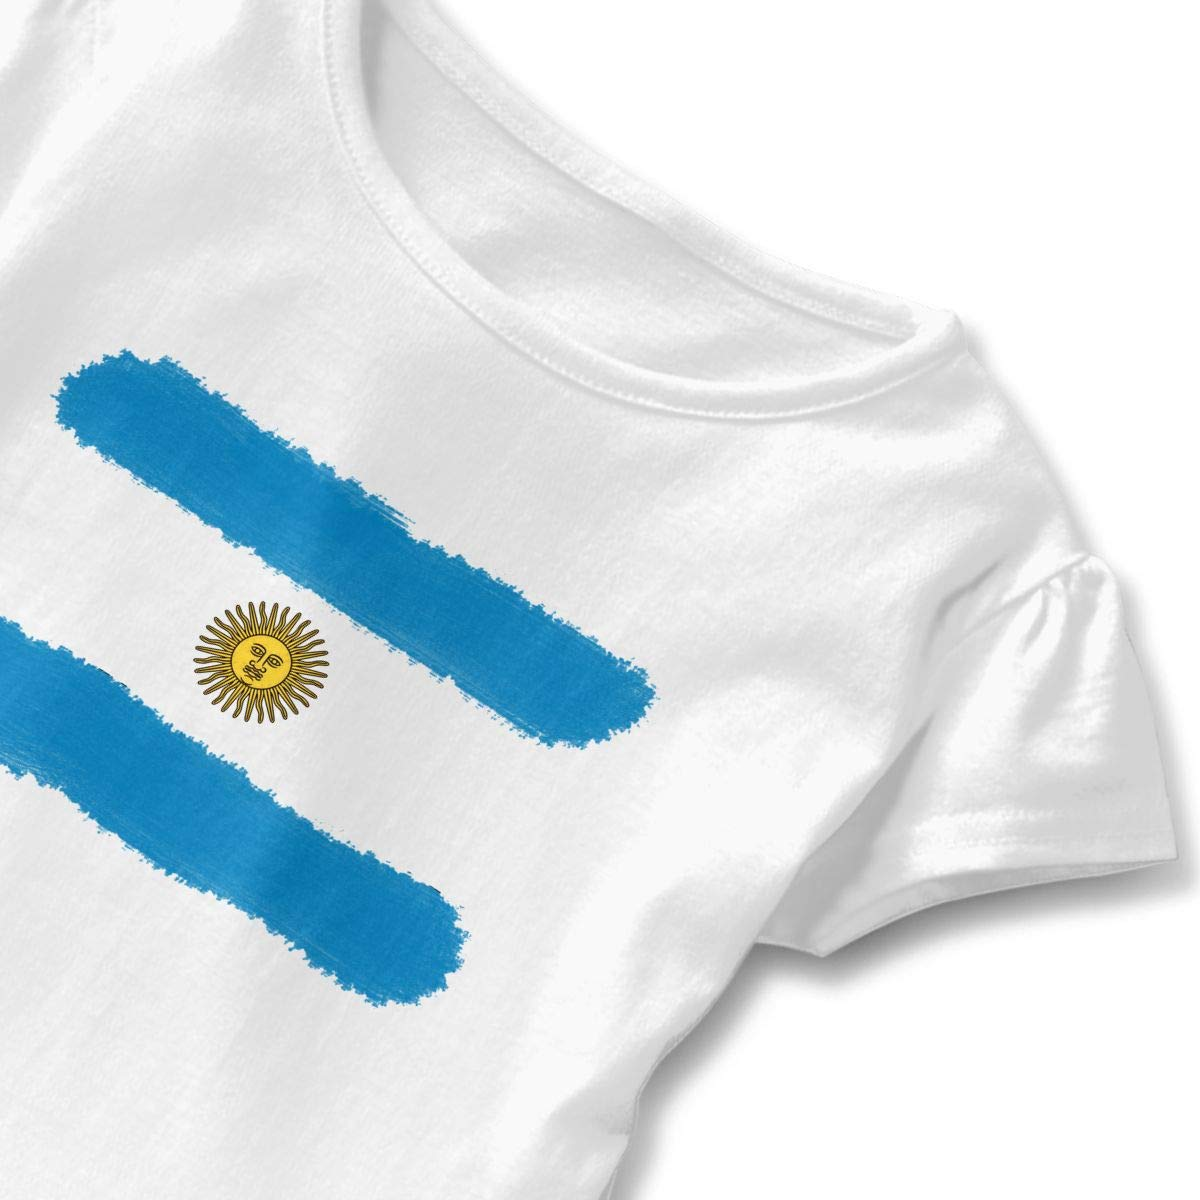 Cheng Jian Bo Flag of Argentina Soccer Toddler Girls T Shirt Kids Cotton Short Sleeve Ruffle Tee